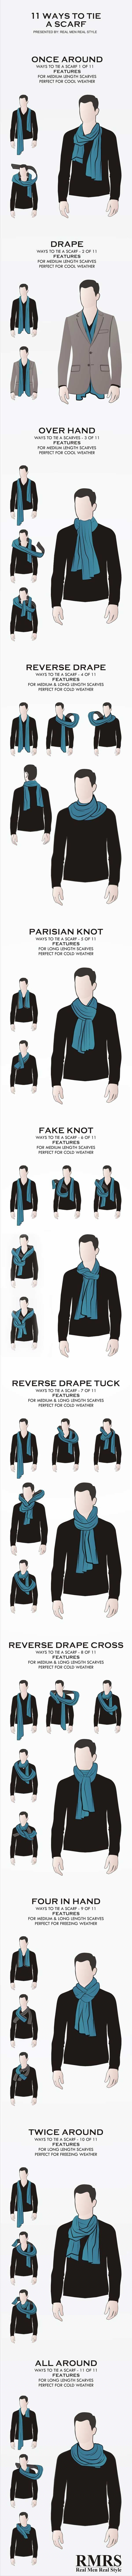 11 Manly Ways To Wear A Scarf